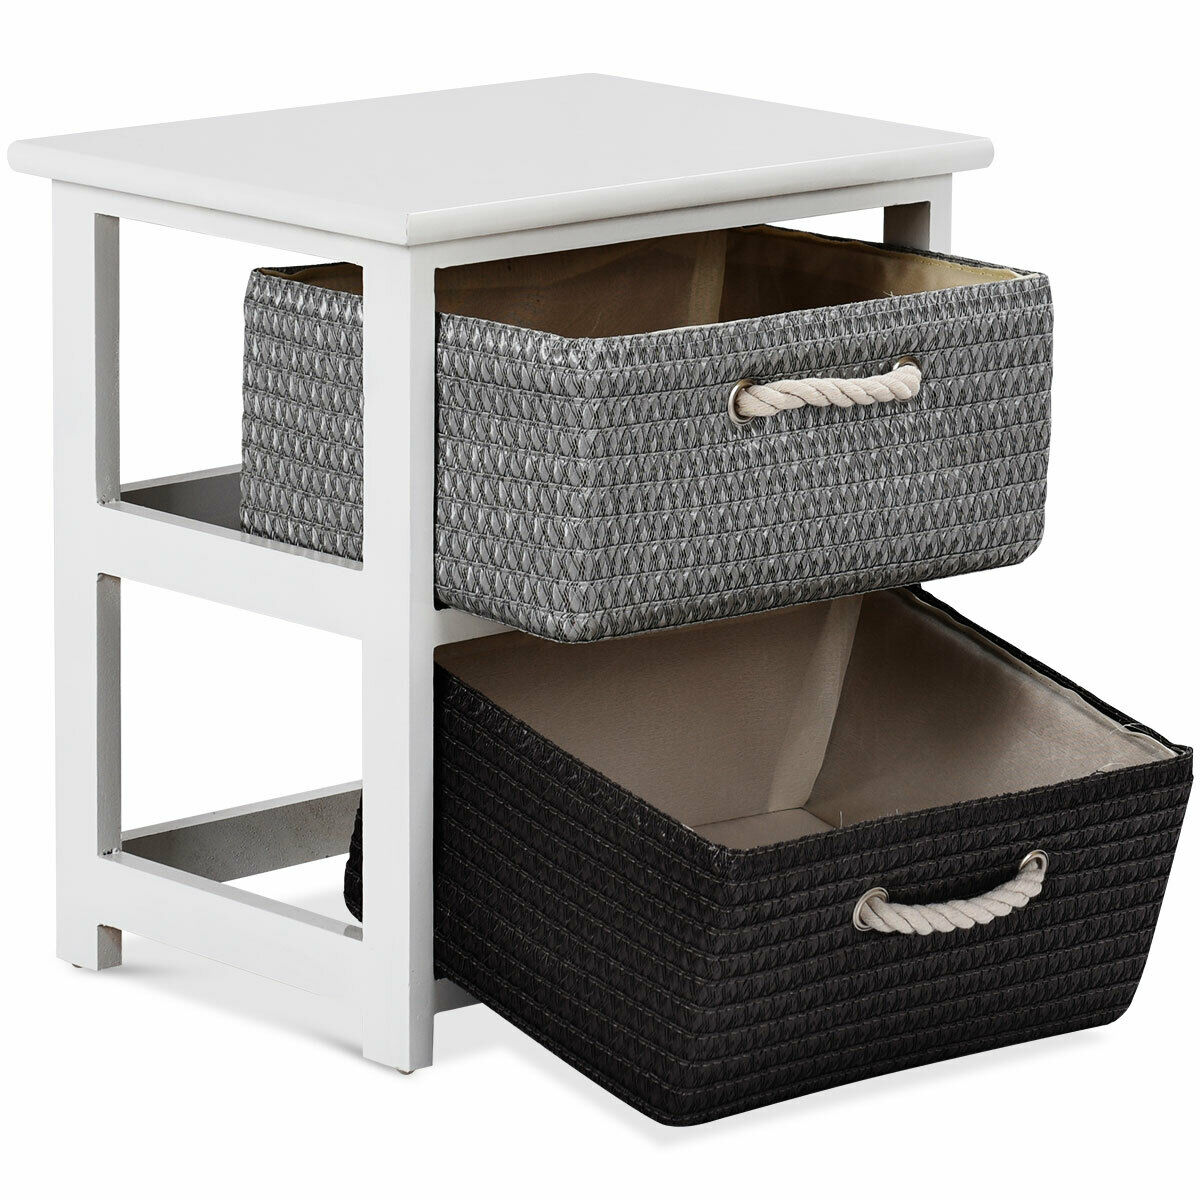 Gymax 2PC Wooden Nightstands 2 Weaving Baskets Bedside Table Storage Organizer Side Table - image 7 de 10